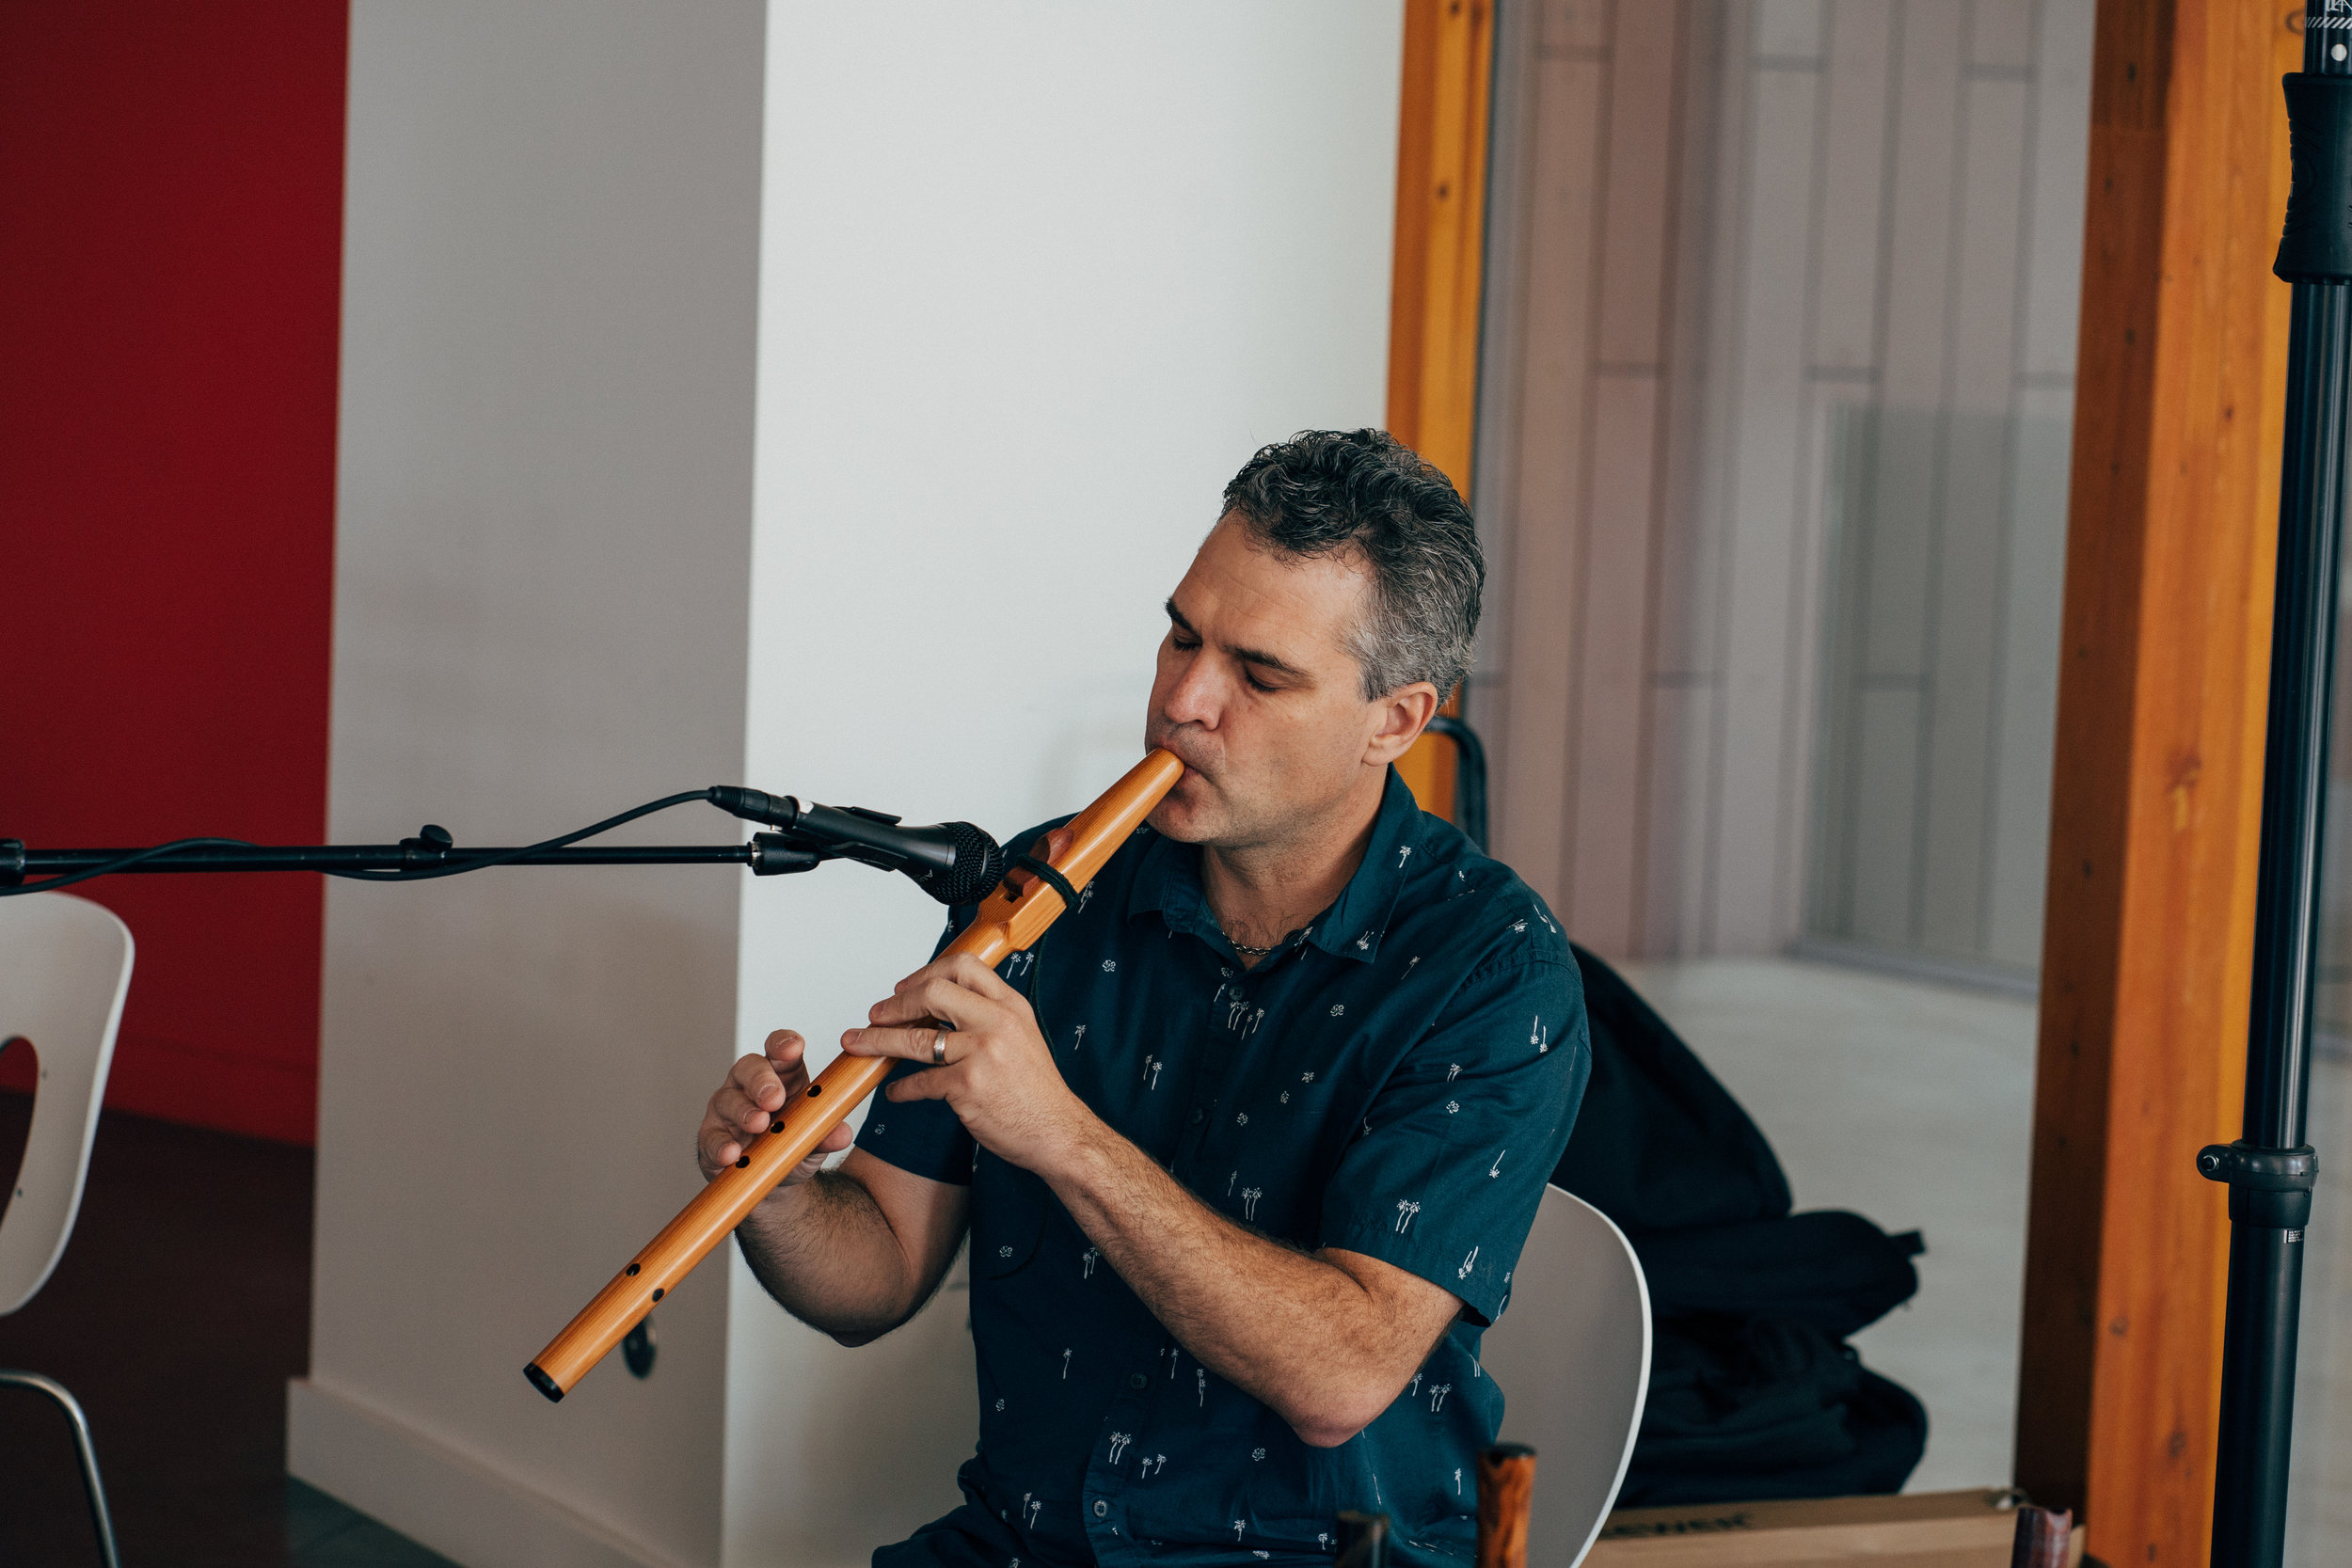 Joe Young - Joe is an accomplished musician. He often joins us to play world flute and saxophone between educational sessions and during the social events at our conferences.